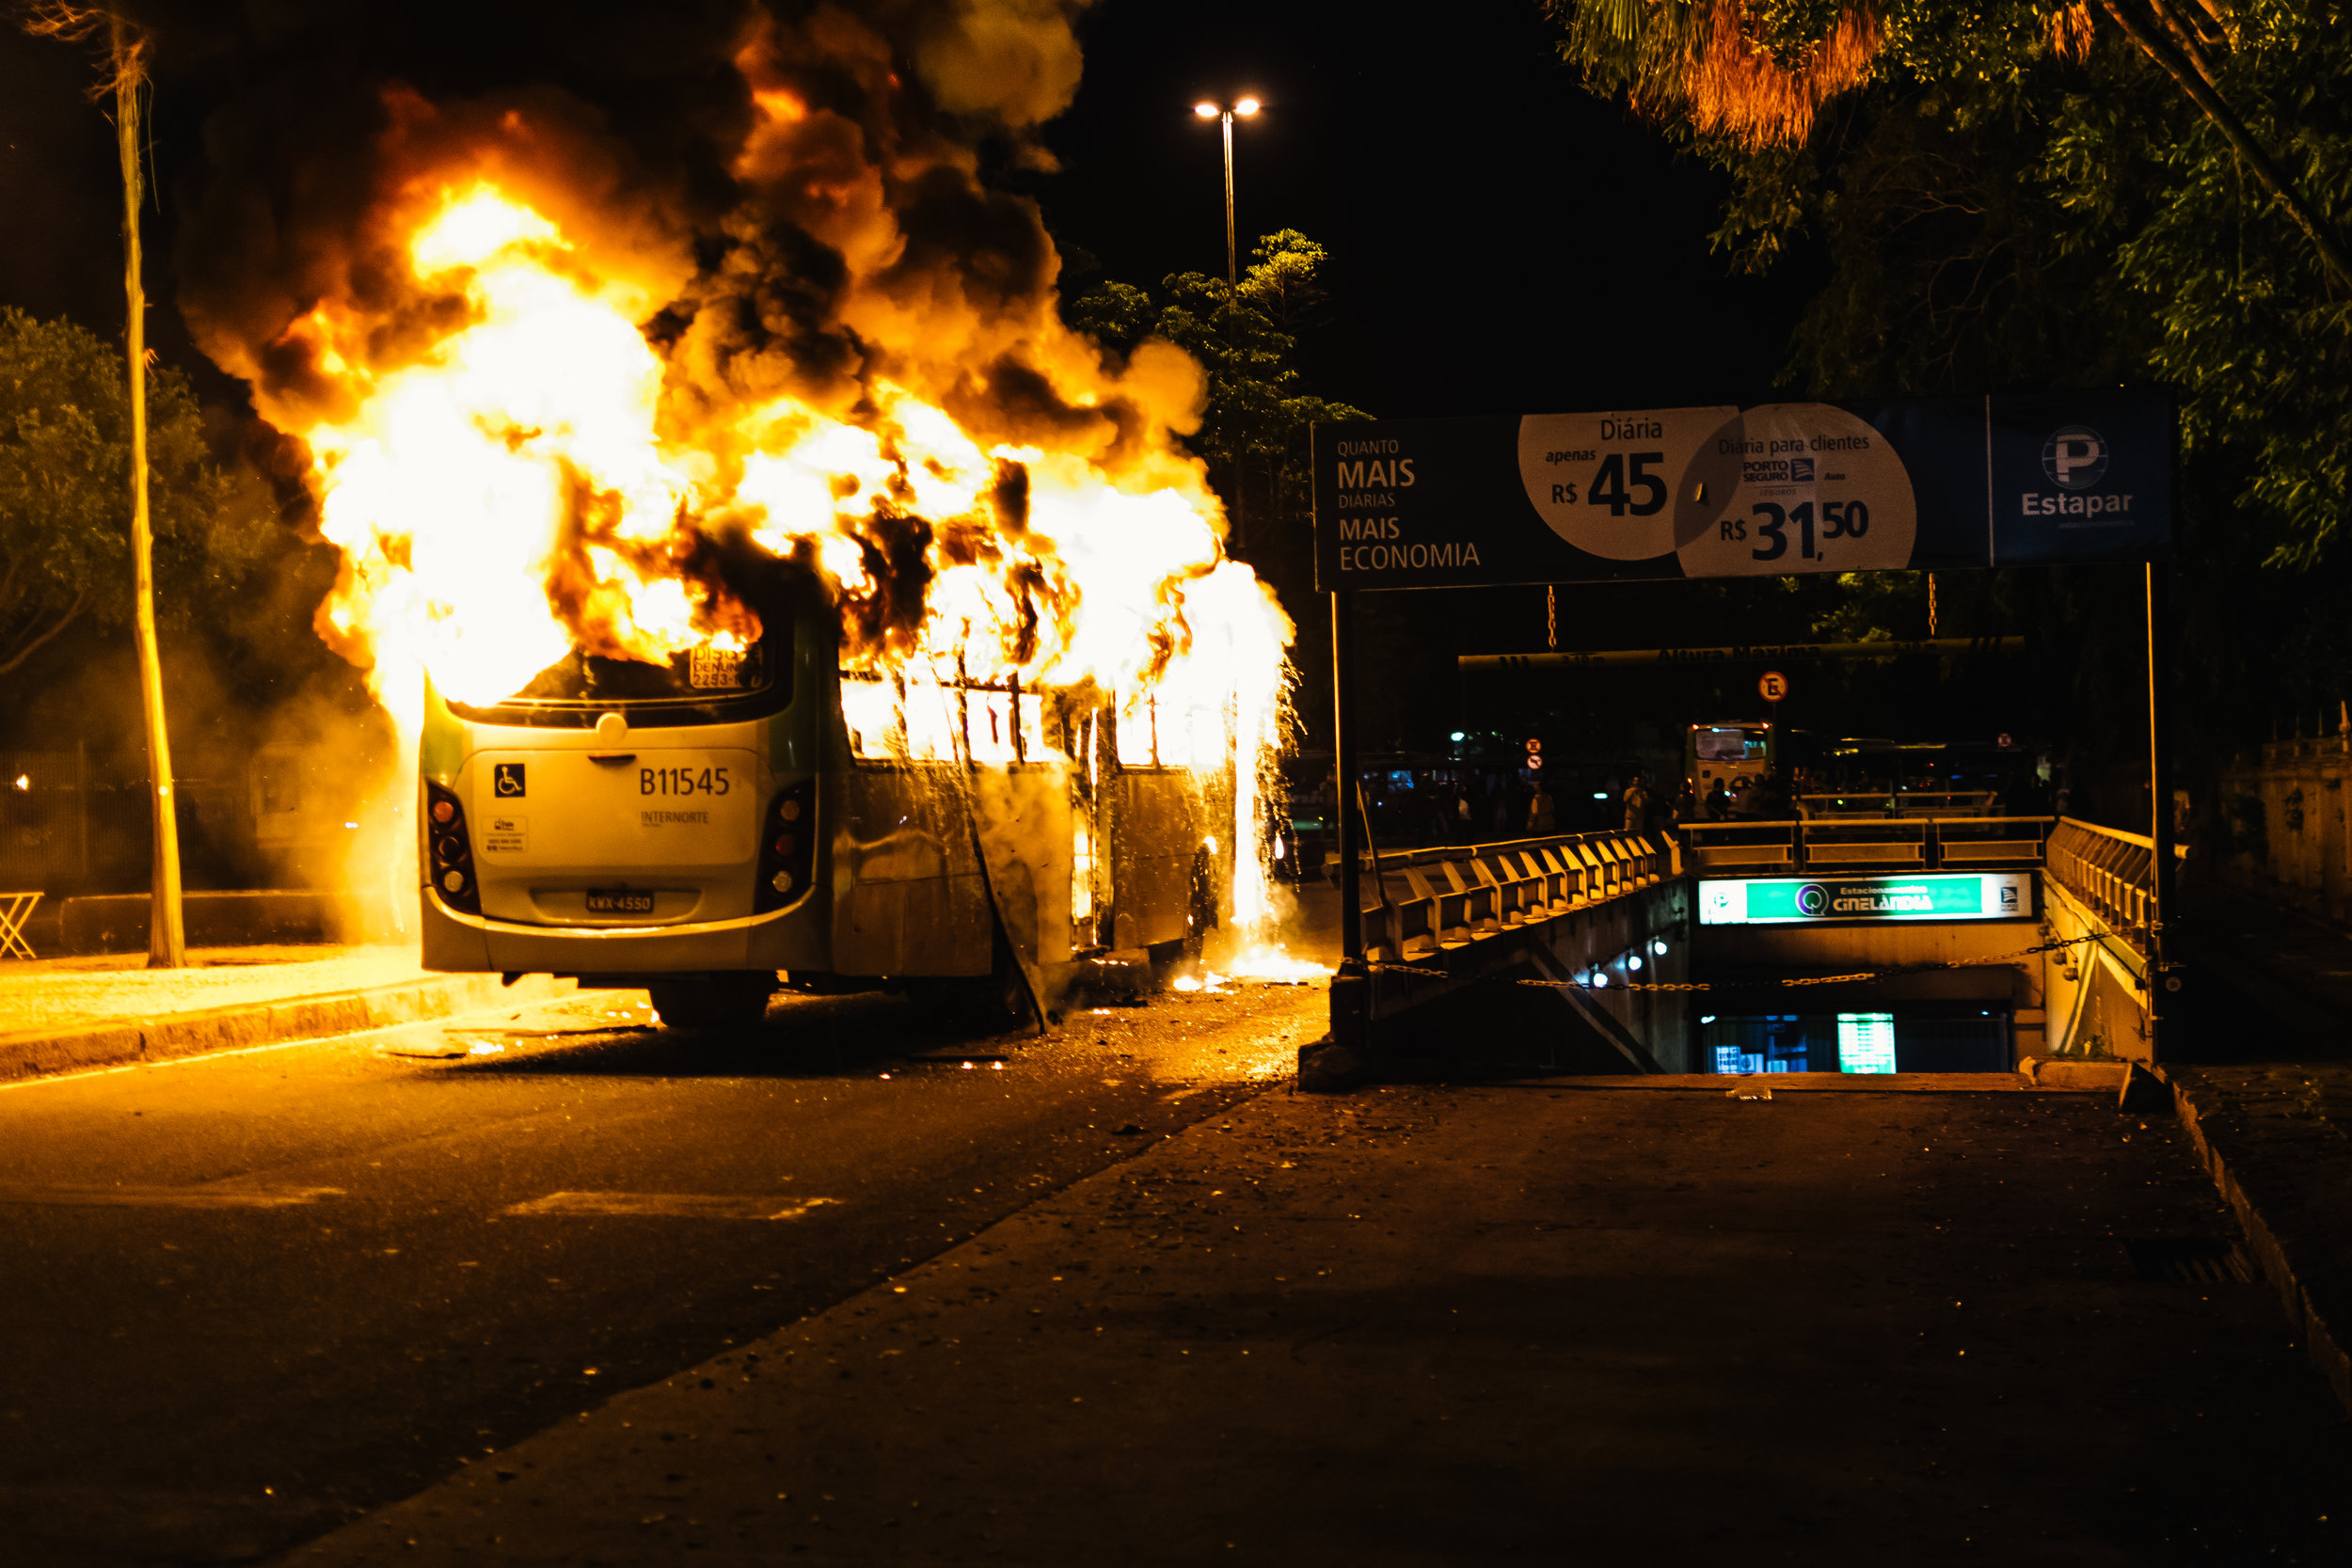 A bus burns after being set on fire by Anti-Temer protesters. President Michael Temer's government suffers from an incredibly low approval rating, principally stemming from his pro-business policies and a long running corruption scandal that threatens to topple the second president in as many years.